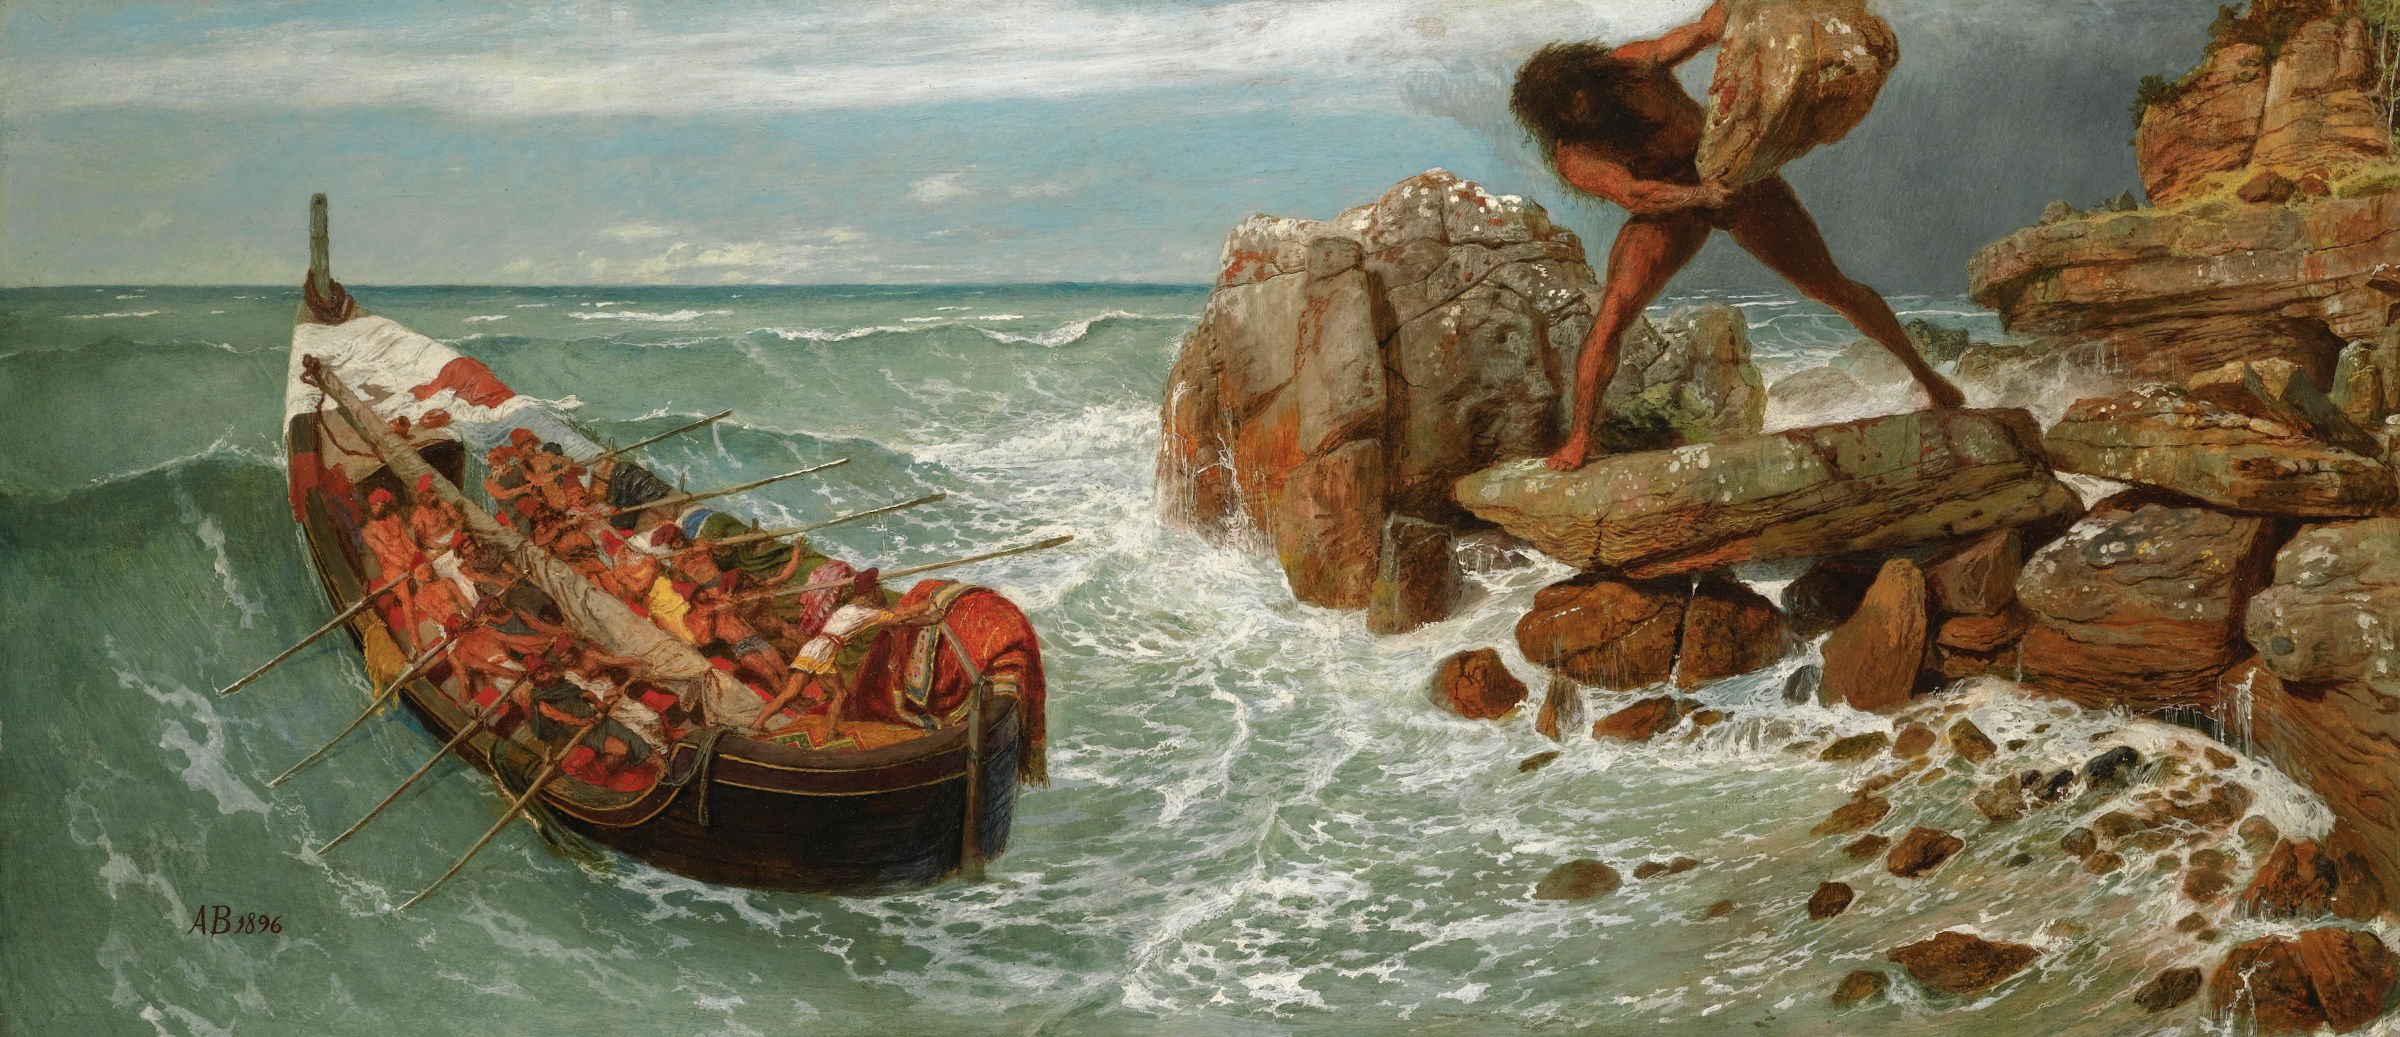 The Story in Paintings: Böcklin's classics and symbols ... Poseidon The Odyssey